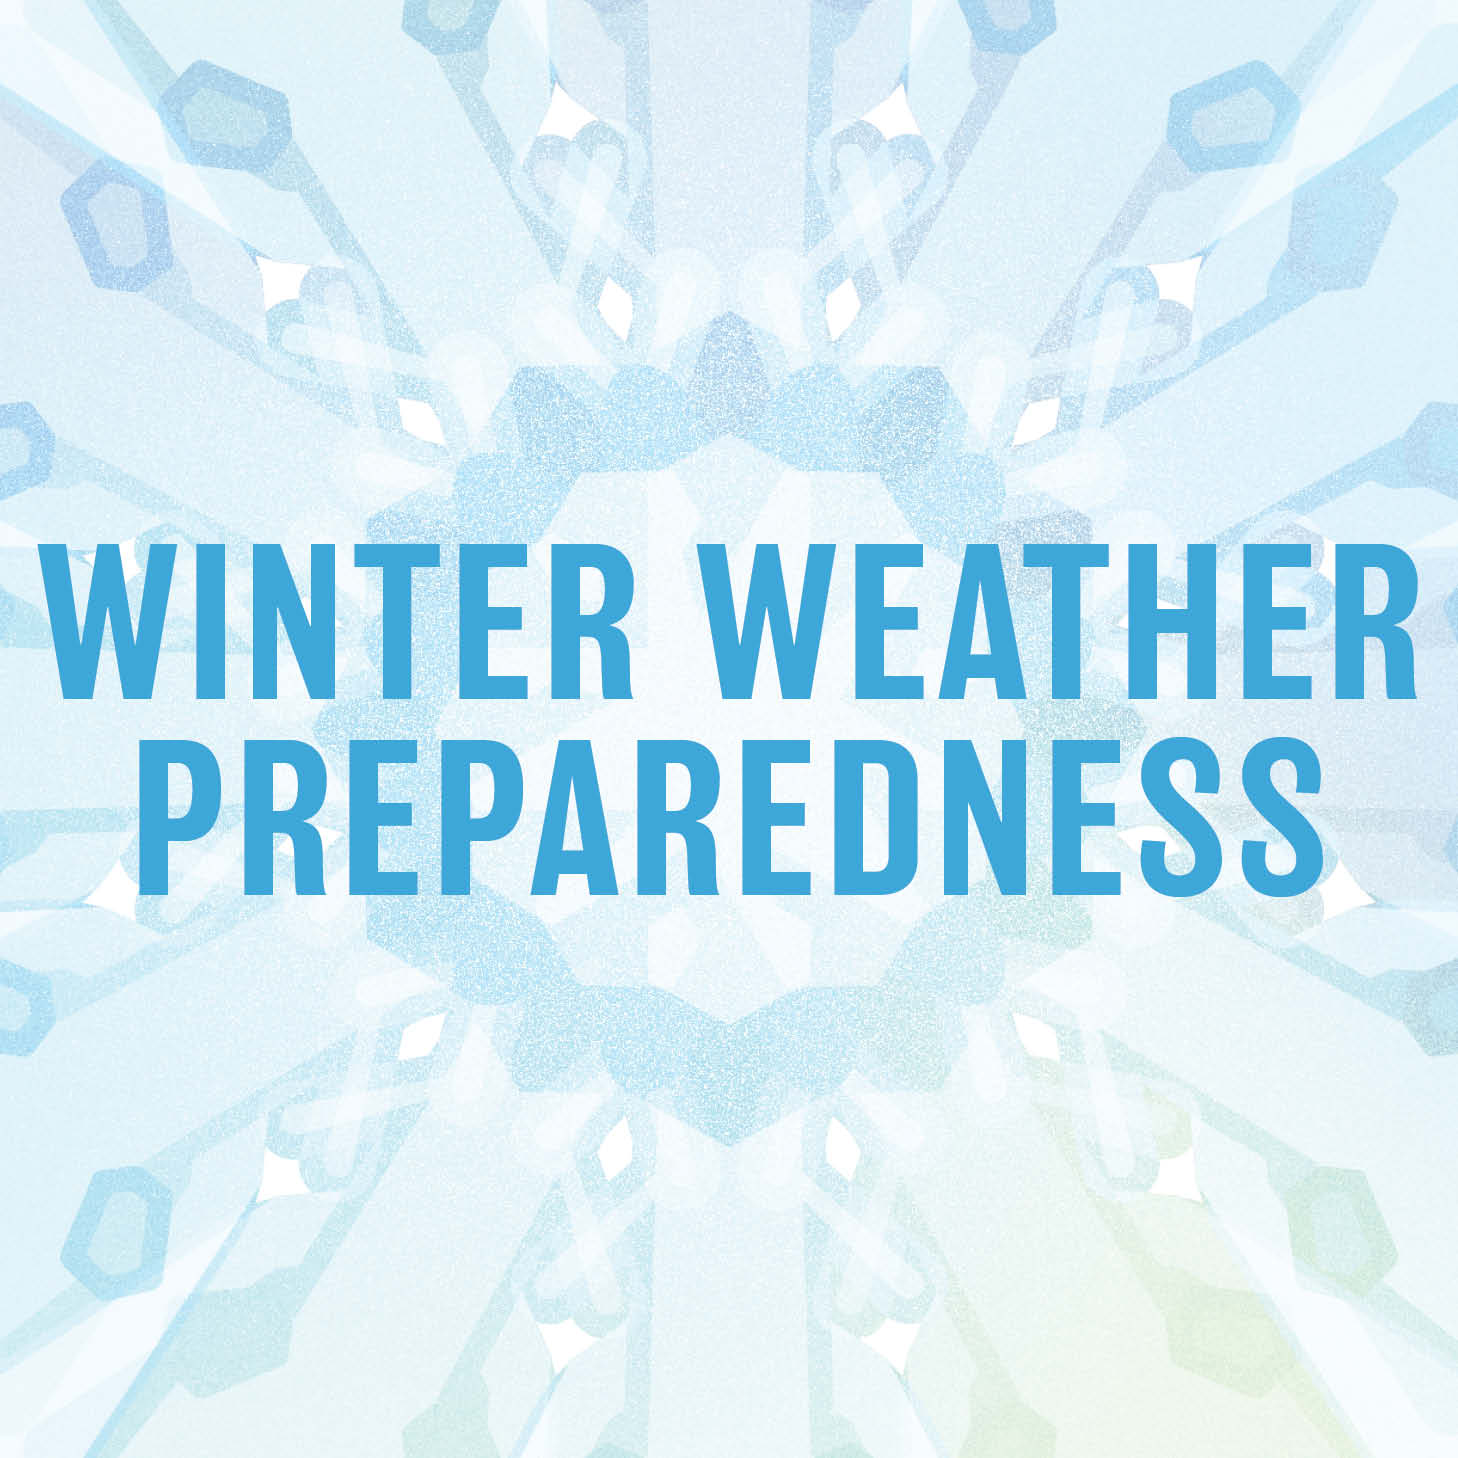 Winter Weather Preparedness